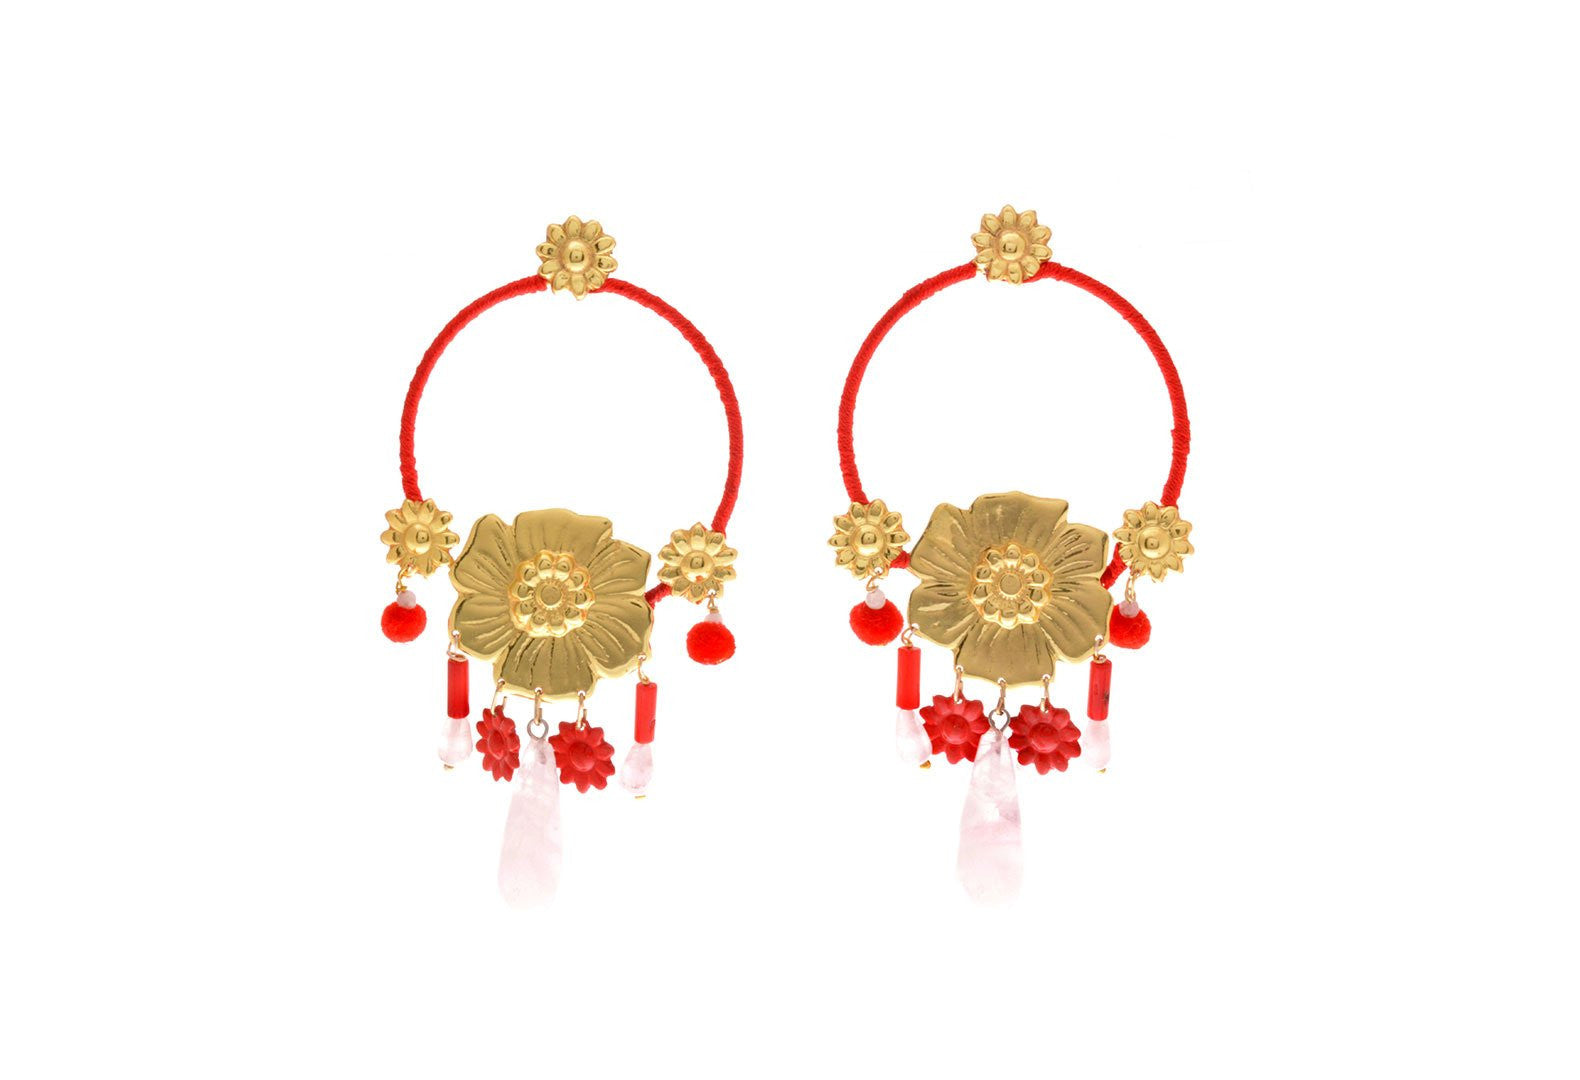 Jardin Secreto Earrings - Lesetta